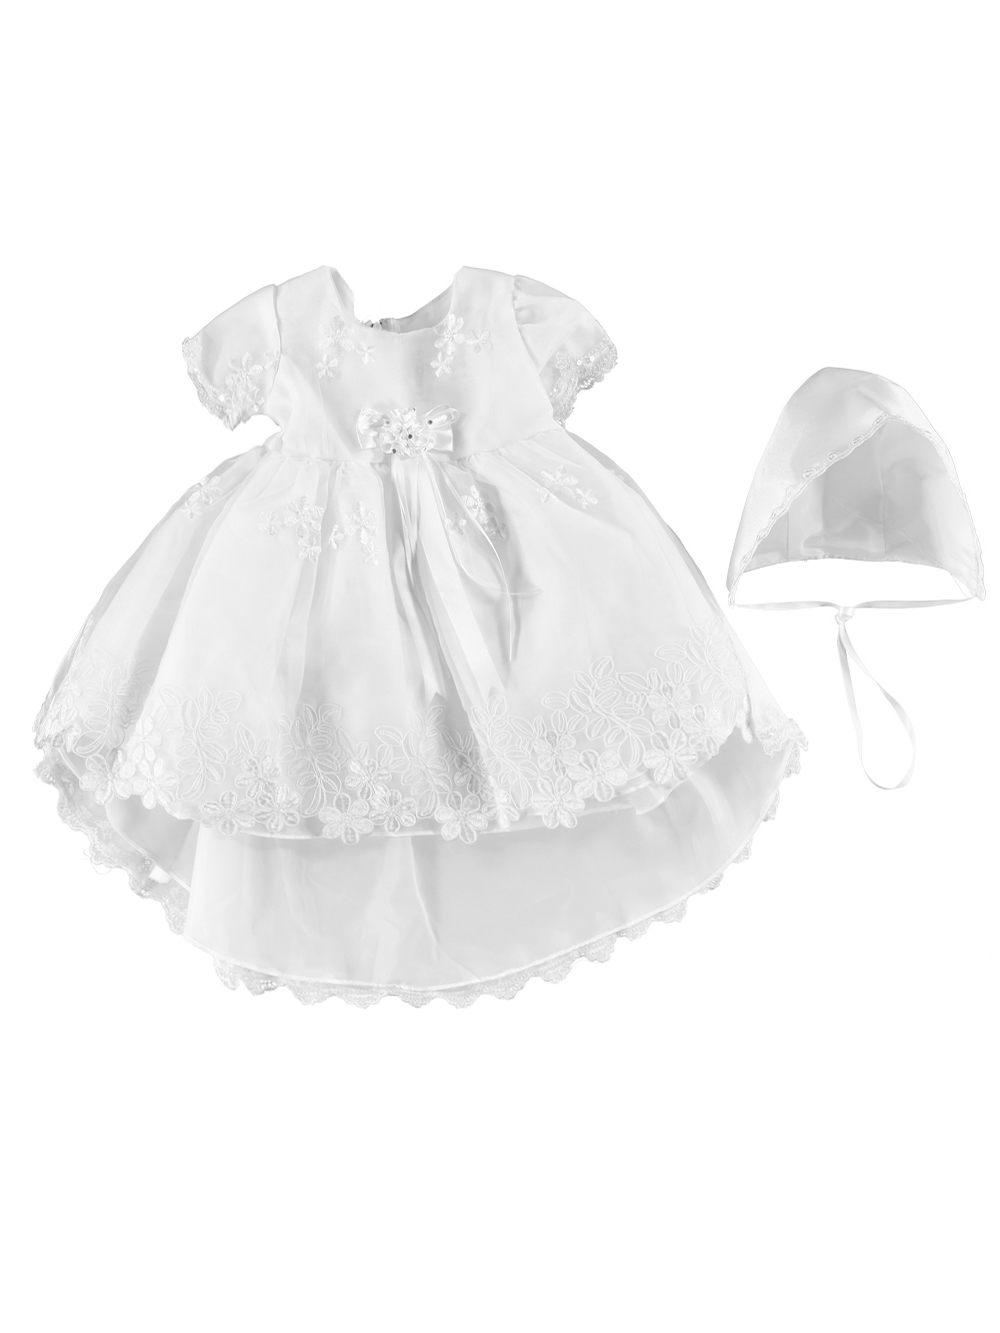 Baby Girls' Angelic Christening Outfit